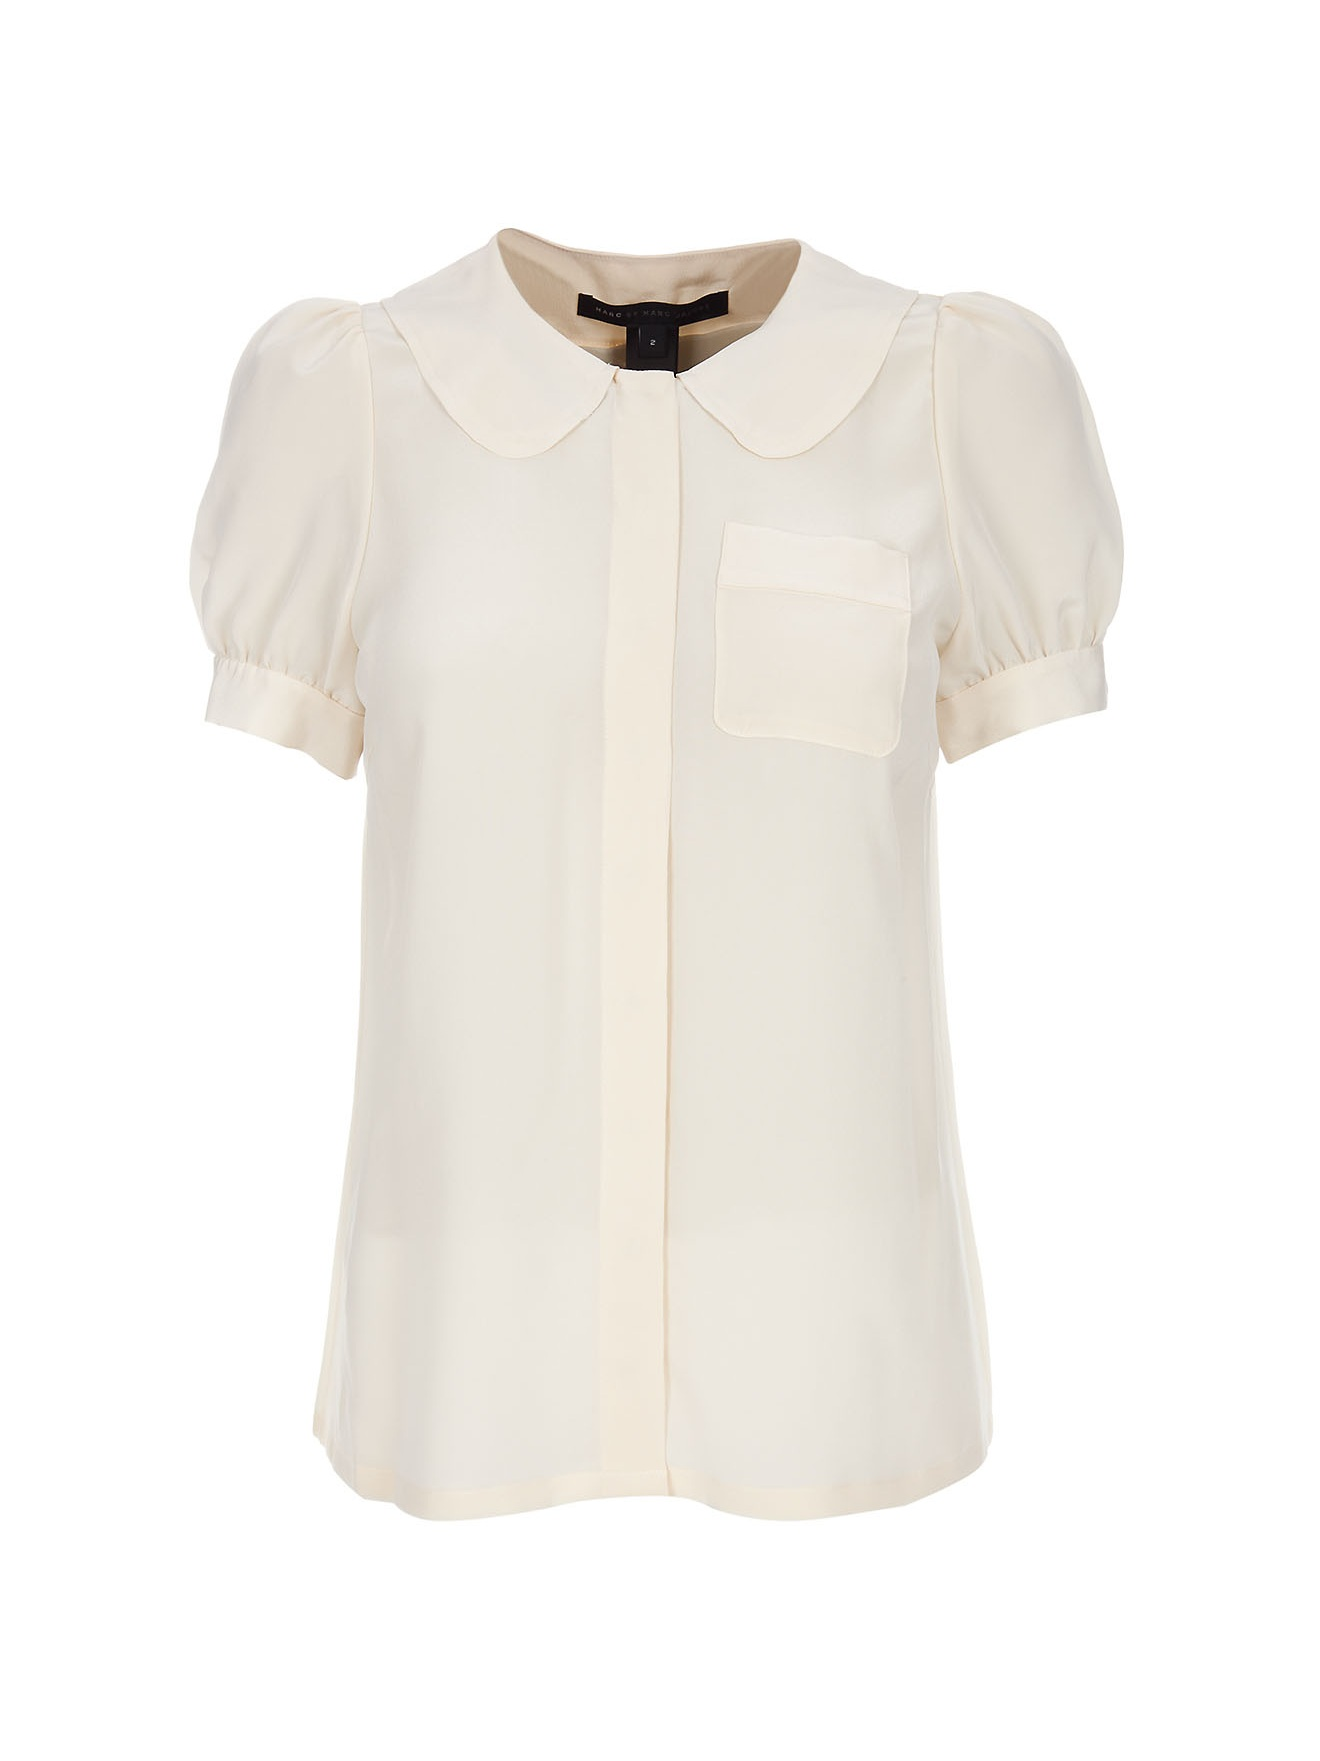 marc by marc jacobs peter pan collar shirt in white lyst